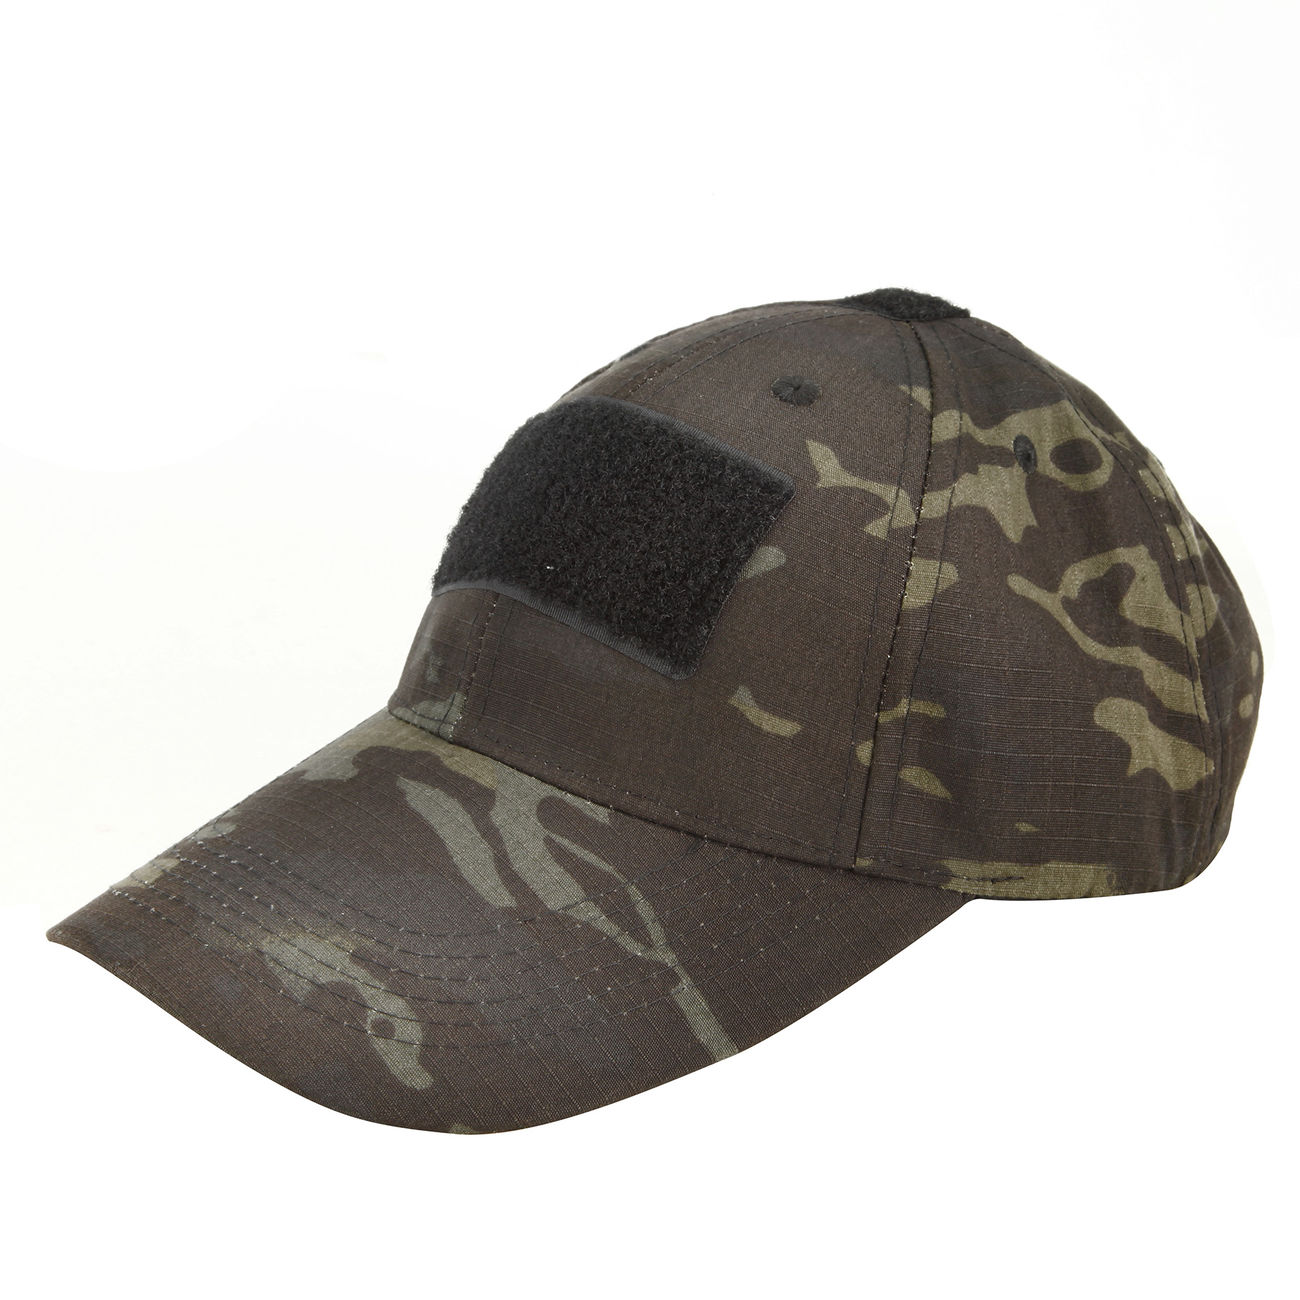 Mil-Tec Tactical Baseball Cap Multitarn Black 4